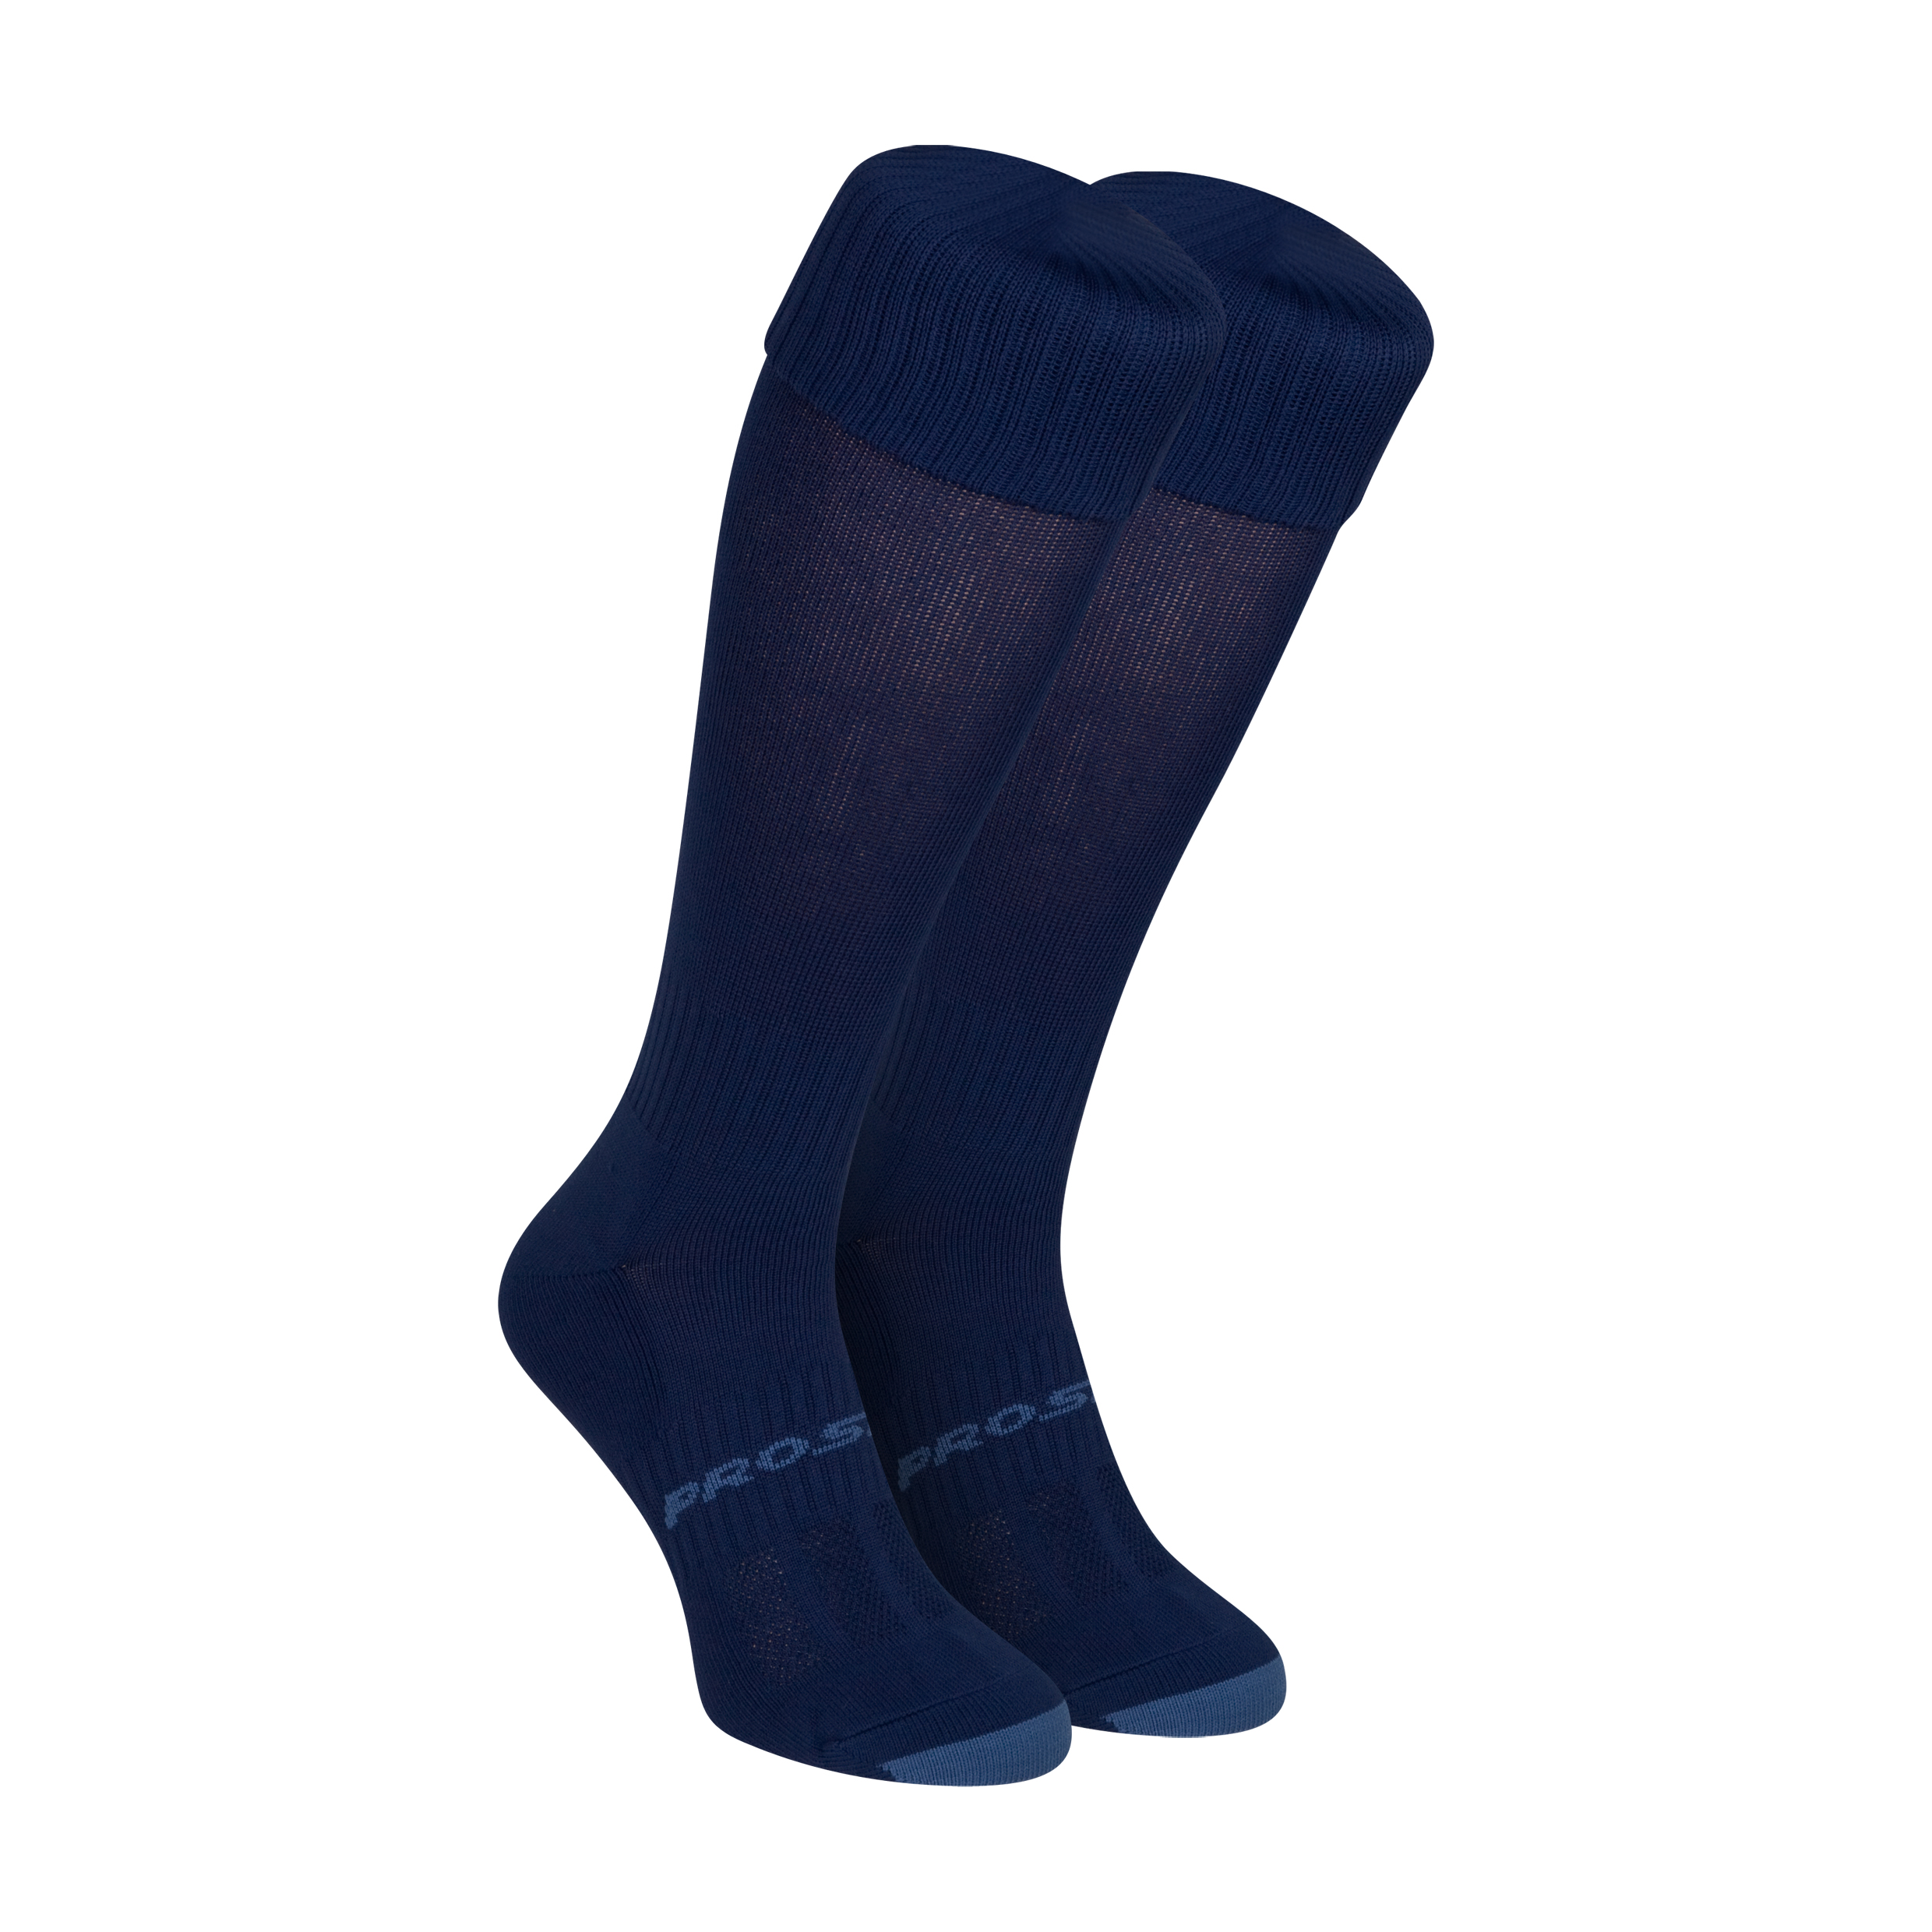 Mitre Mercury Football Socks - Navy - Size 7-11